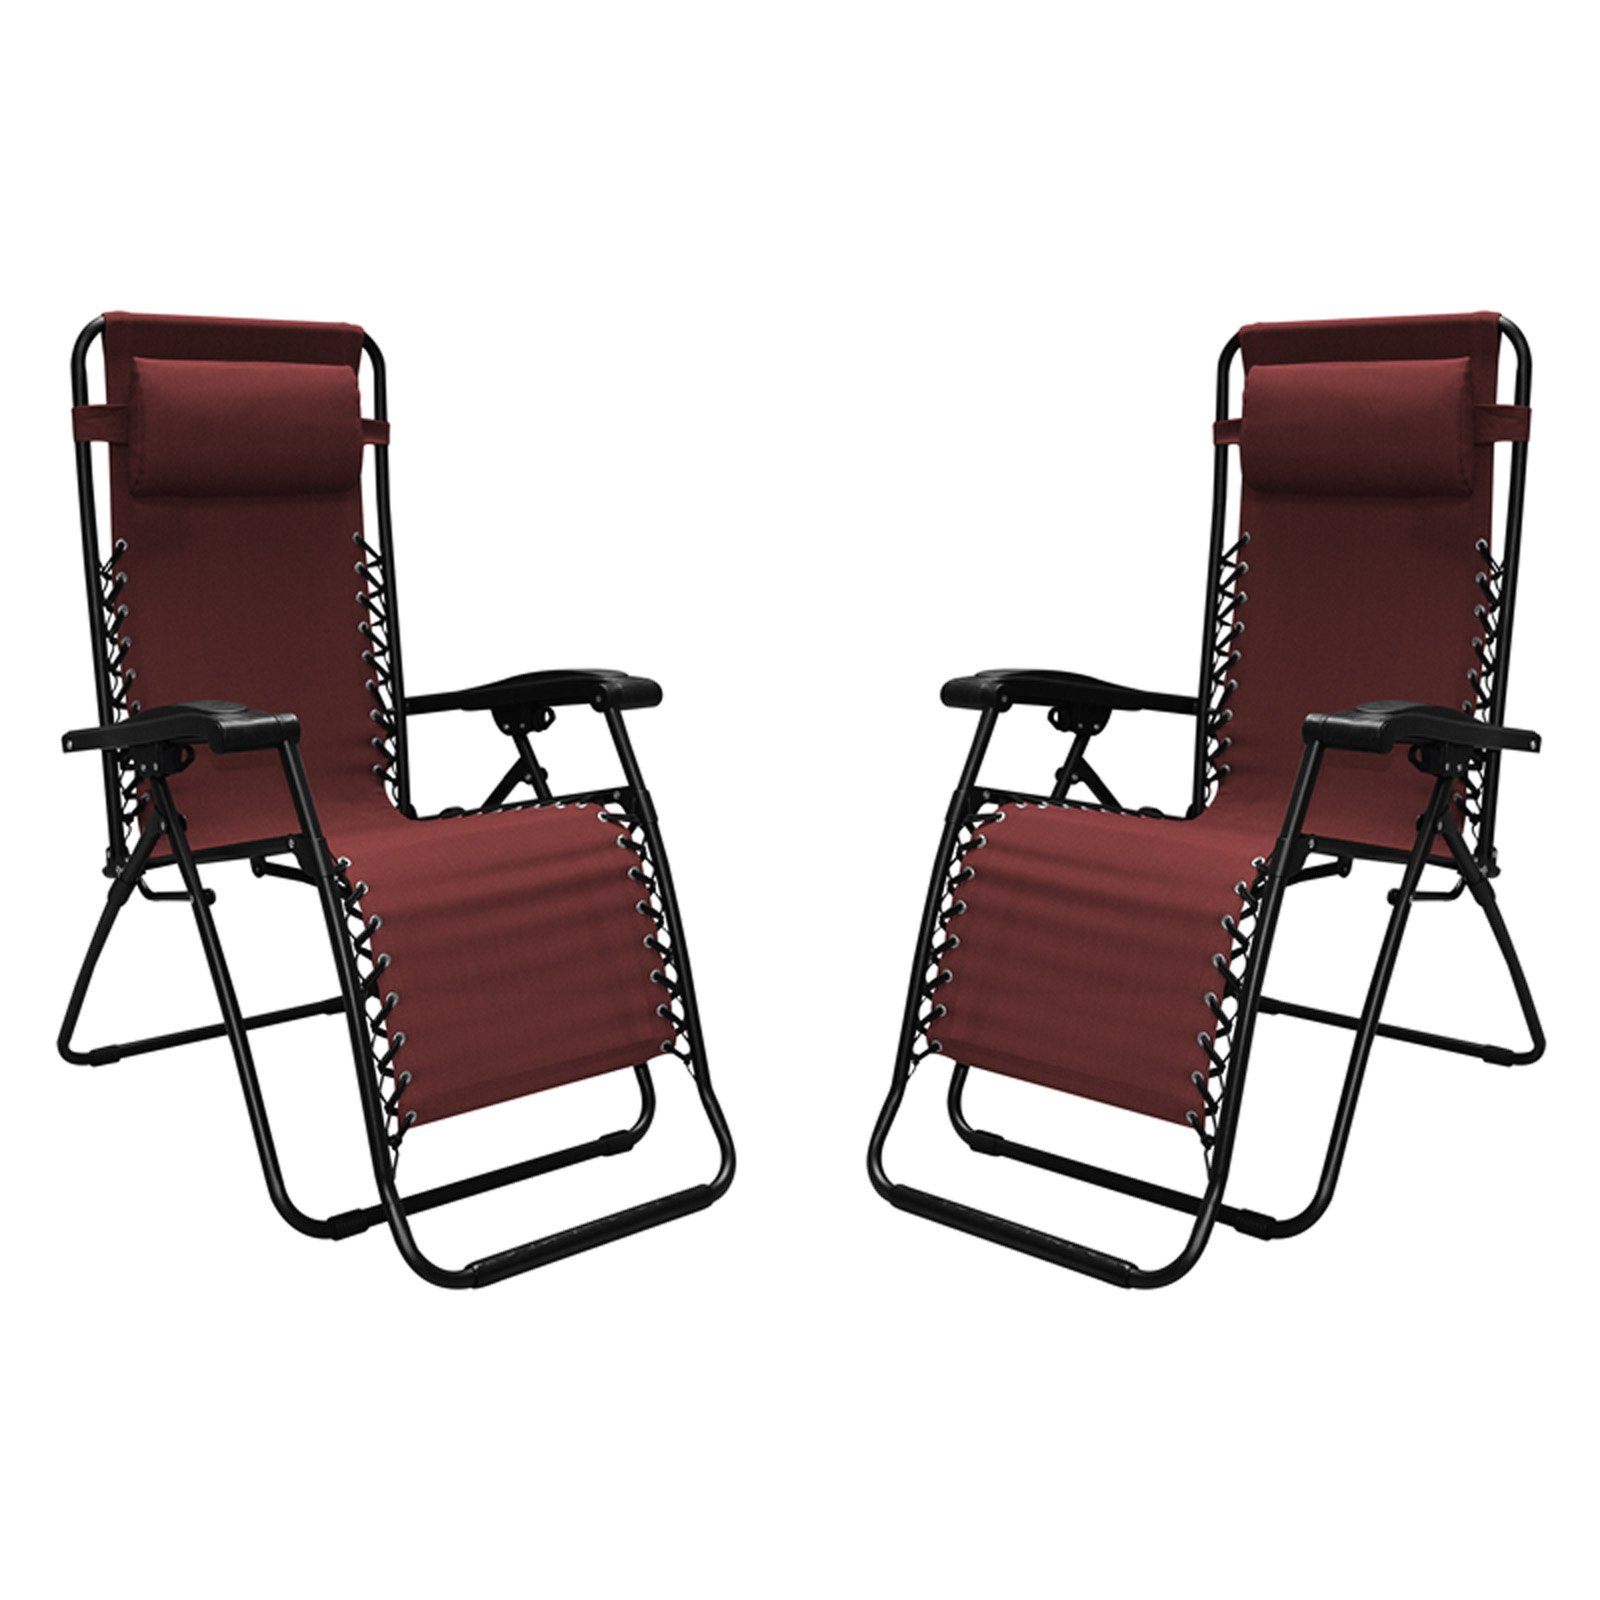 Caravan Sports Infinity Zero Gravity Chair, 2pk, Burgundy